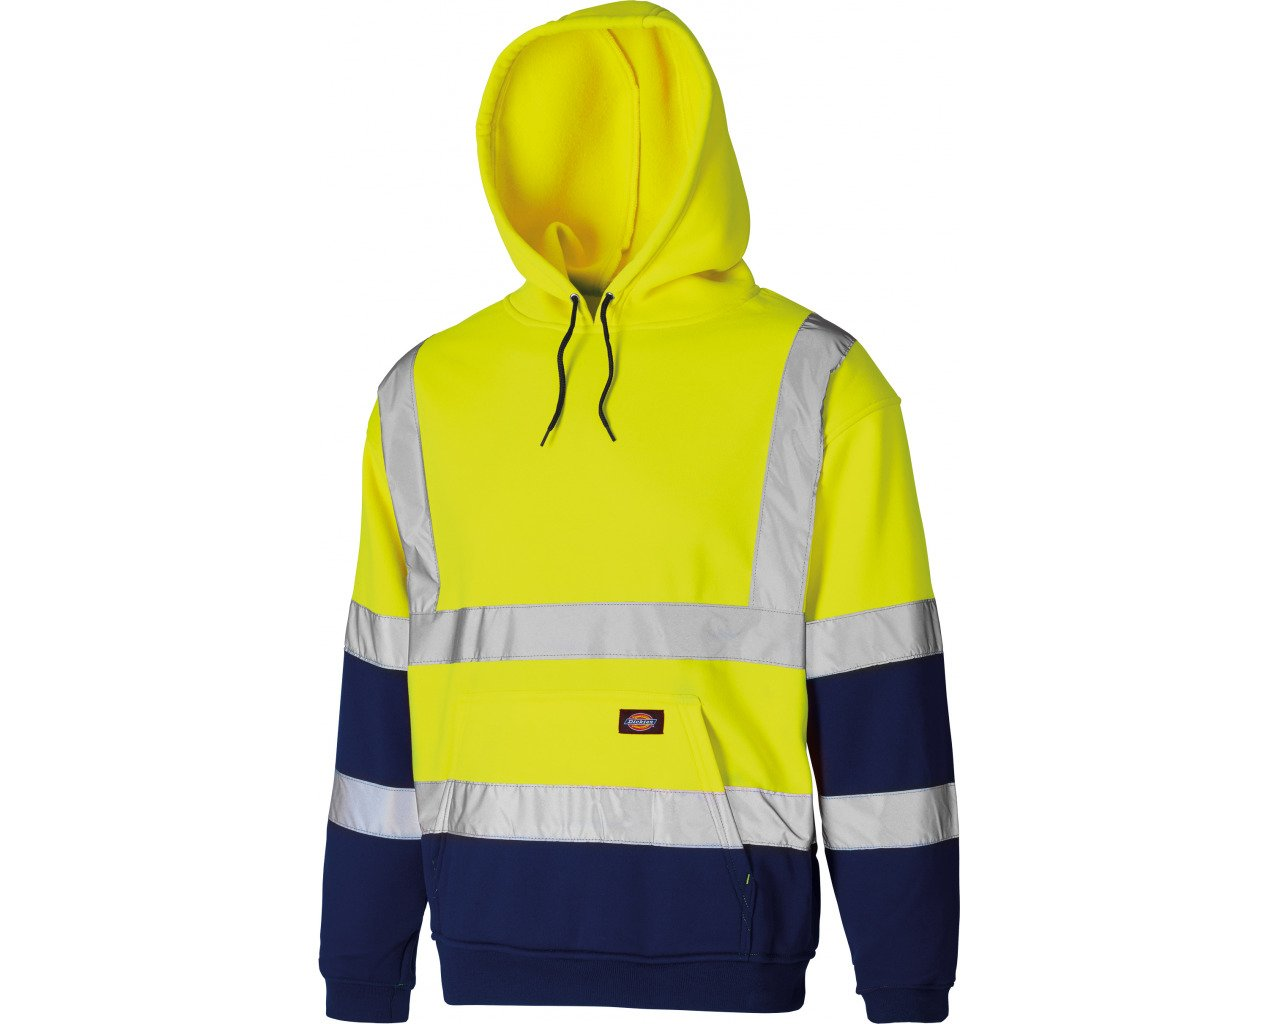 Dickies SA22095-OR-XXL Two Tone Hi-Vis Hoodie, 2X-Large, Orange